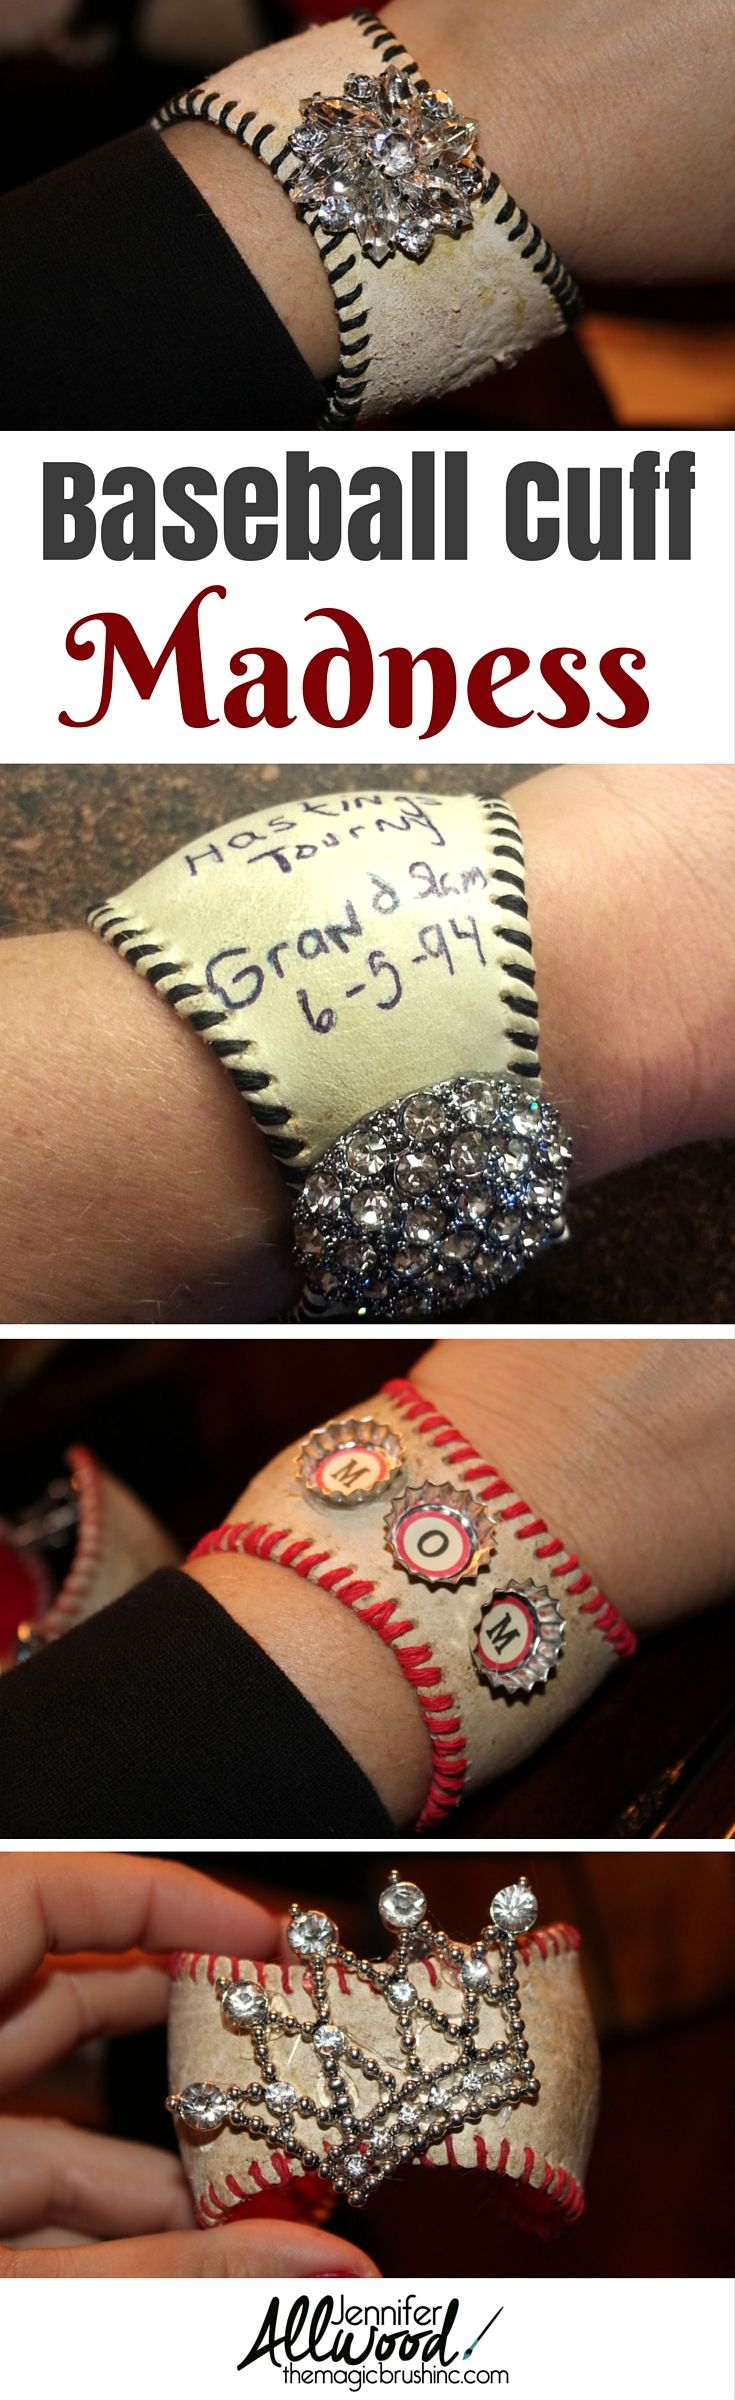 Baseball cuff madness! Add a little bling or turn a momentous game ball into a treasured piece of jewelry!  Great for baseball fans and basemall moms! More DIY projects at theMagicBrushinc.com